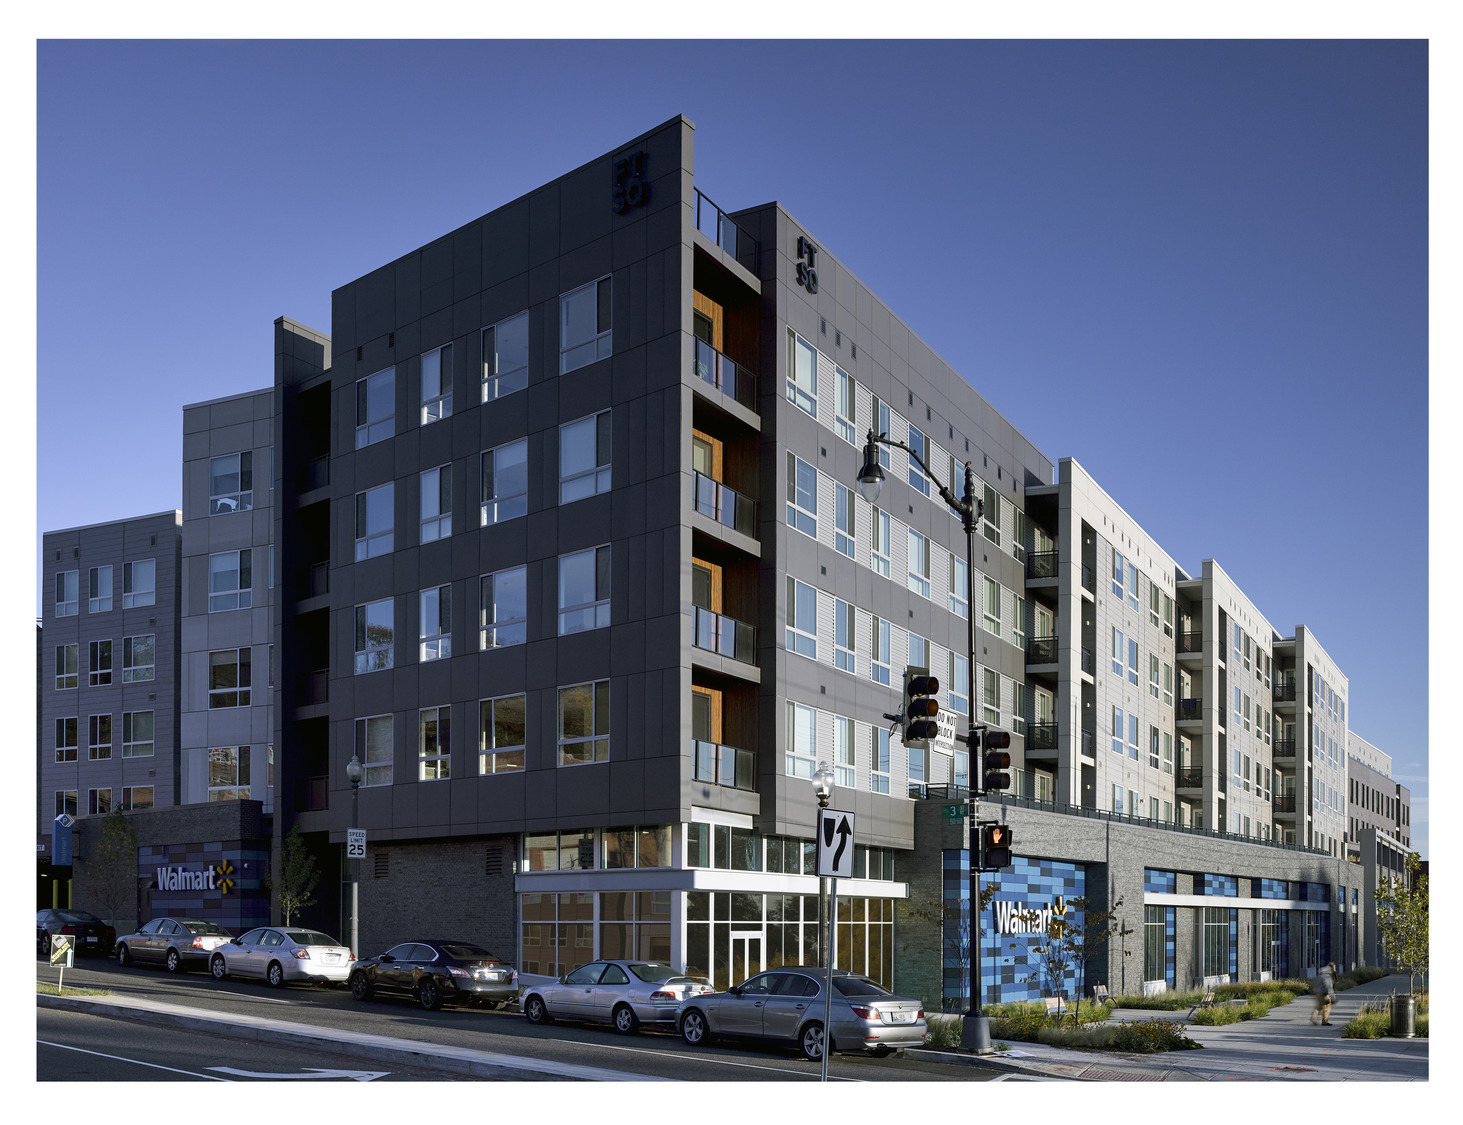 CBG builds Fort Totten Square, a 345-Unit Mixed-Use Community with Retail and Parking in Washington, DC - Image #1